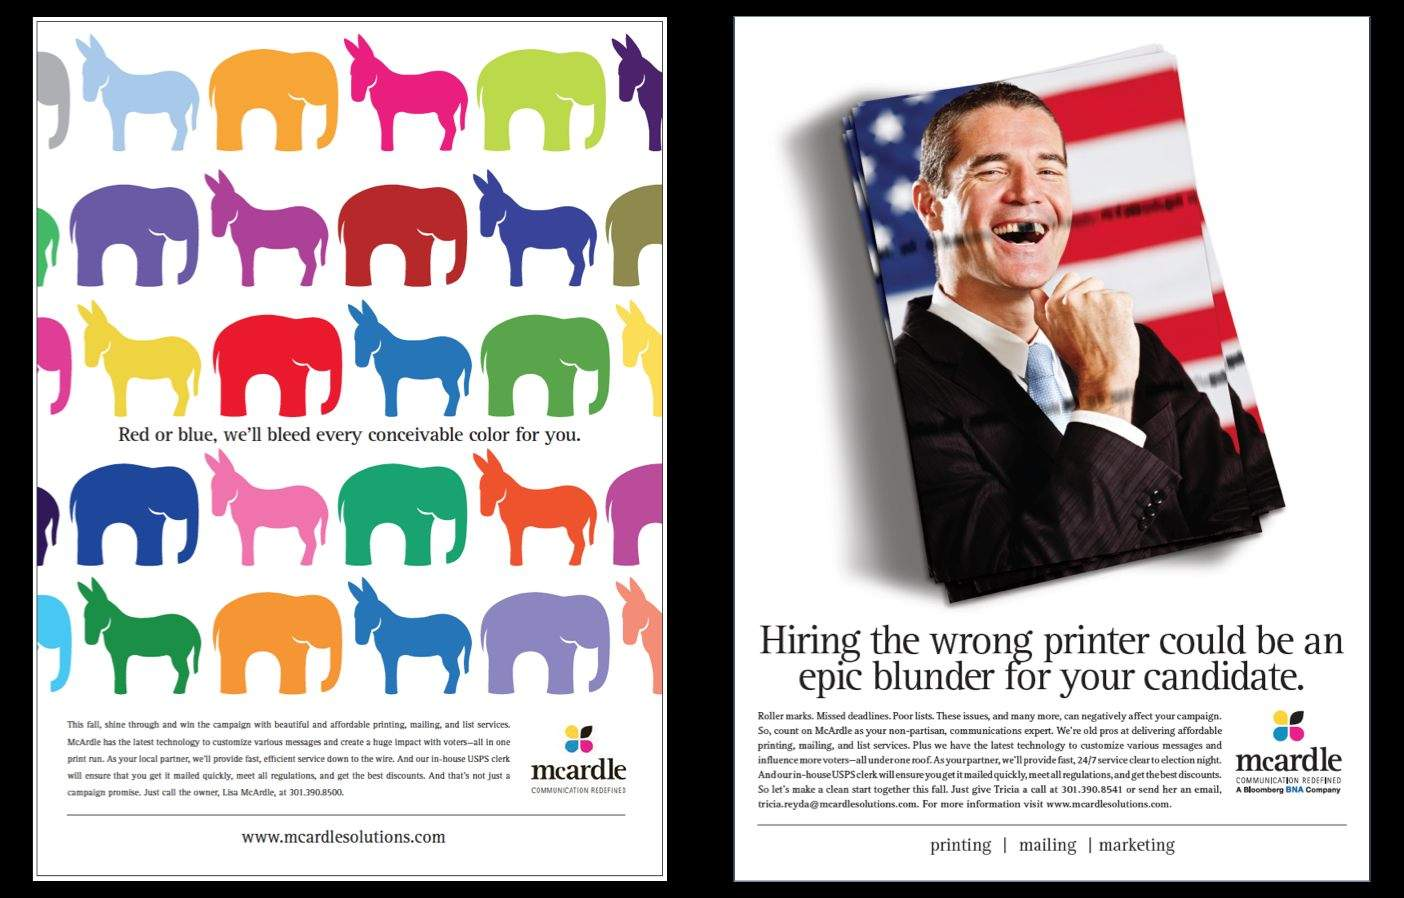 Creative political advertising in DC: which ad would you choose? Two bold options for a Washington, DC printing services firm.